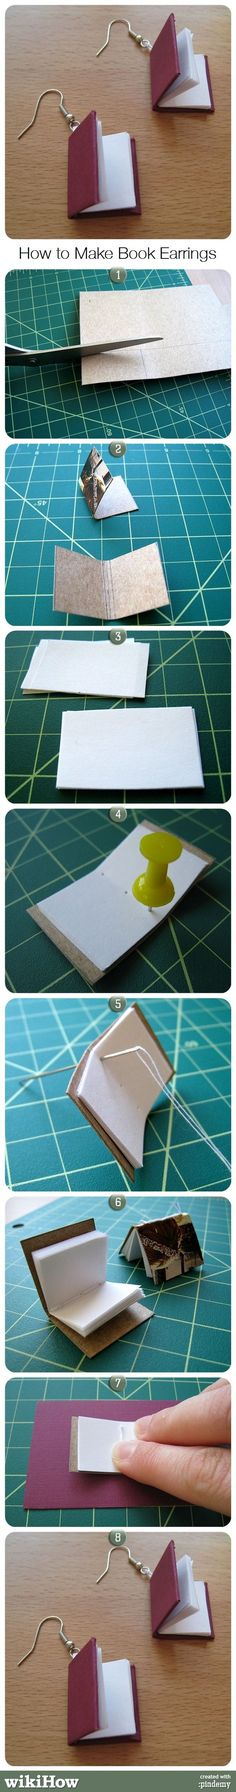 How to Make Book Earrings - Cool idea for Tales of Adventure merchandise!